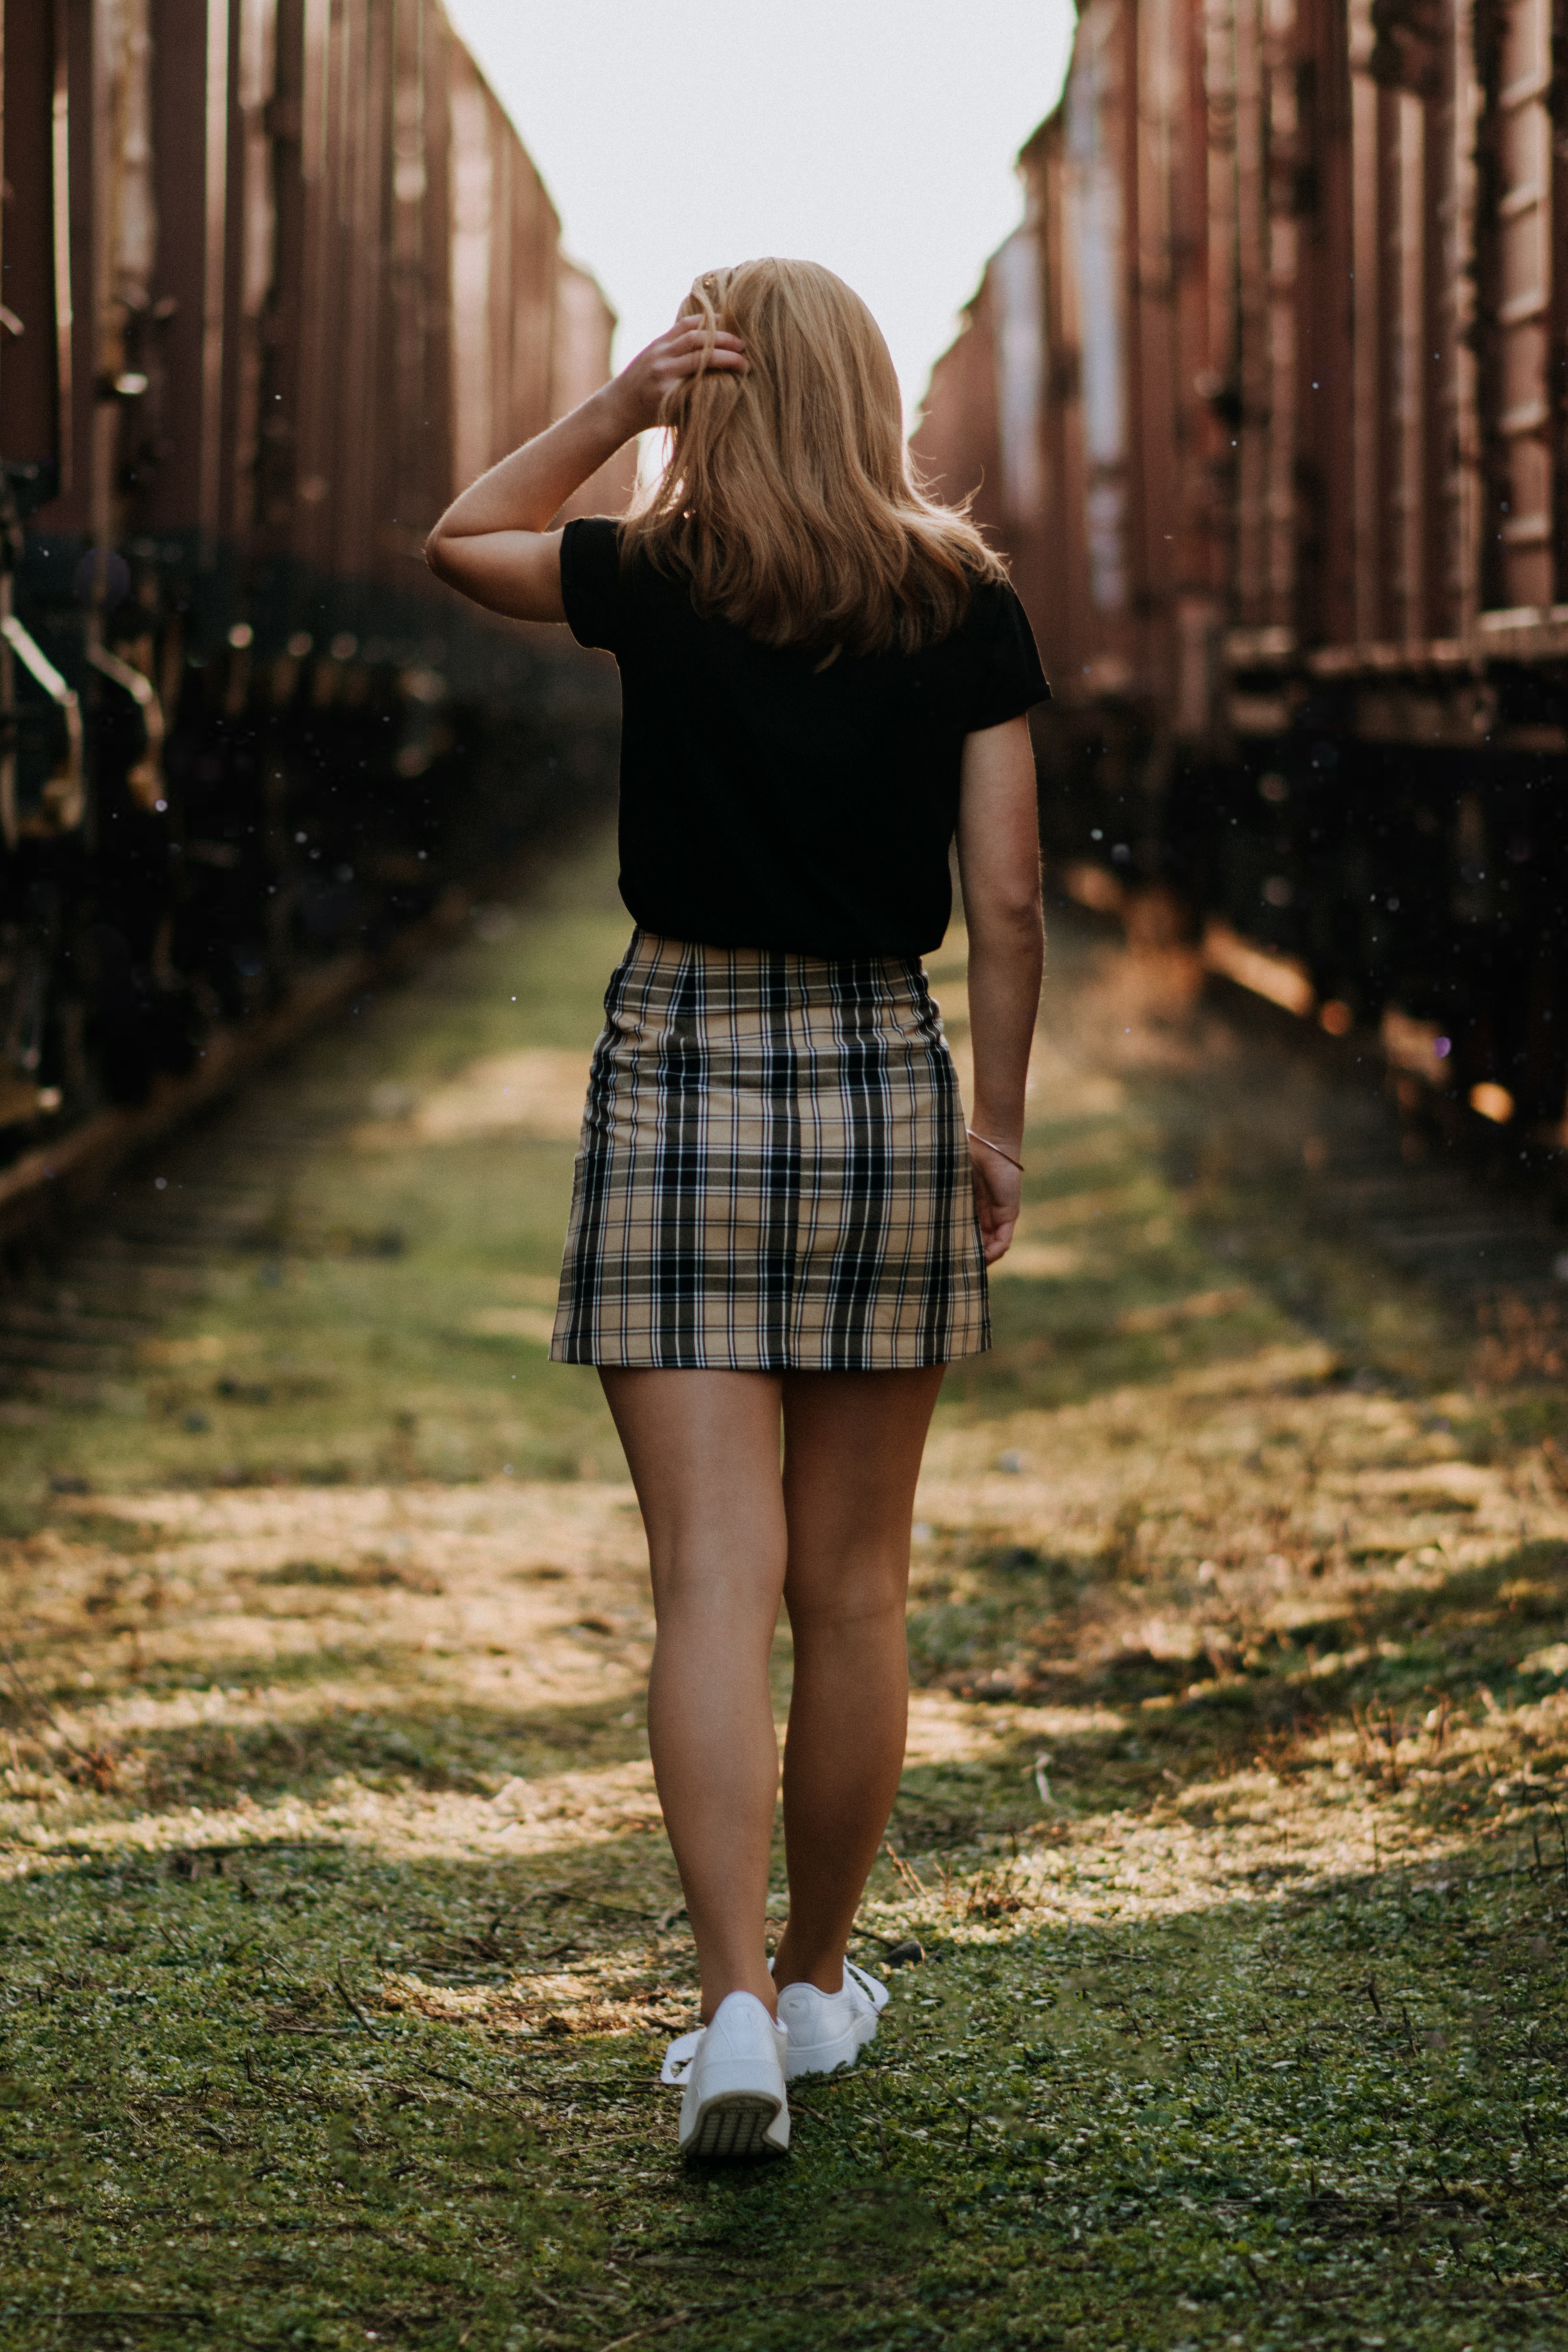 shallow focus photo of woman in white and black plaid mini skirt walking